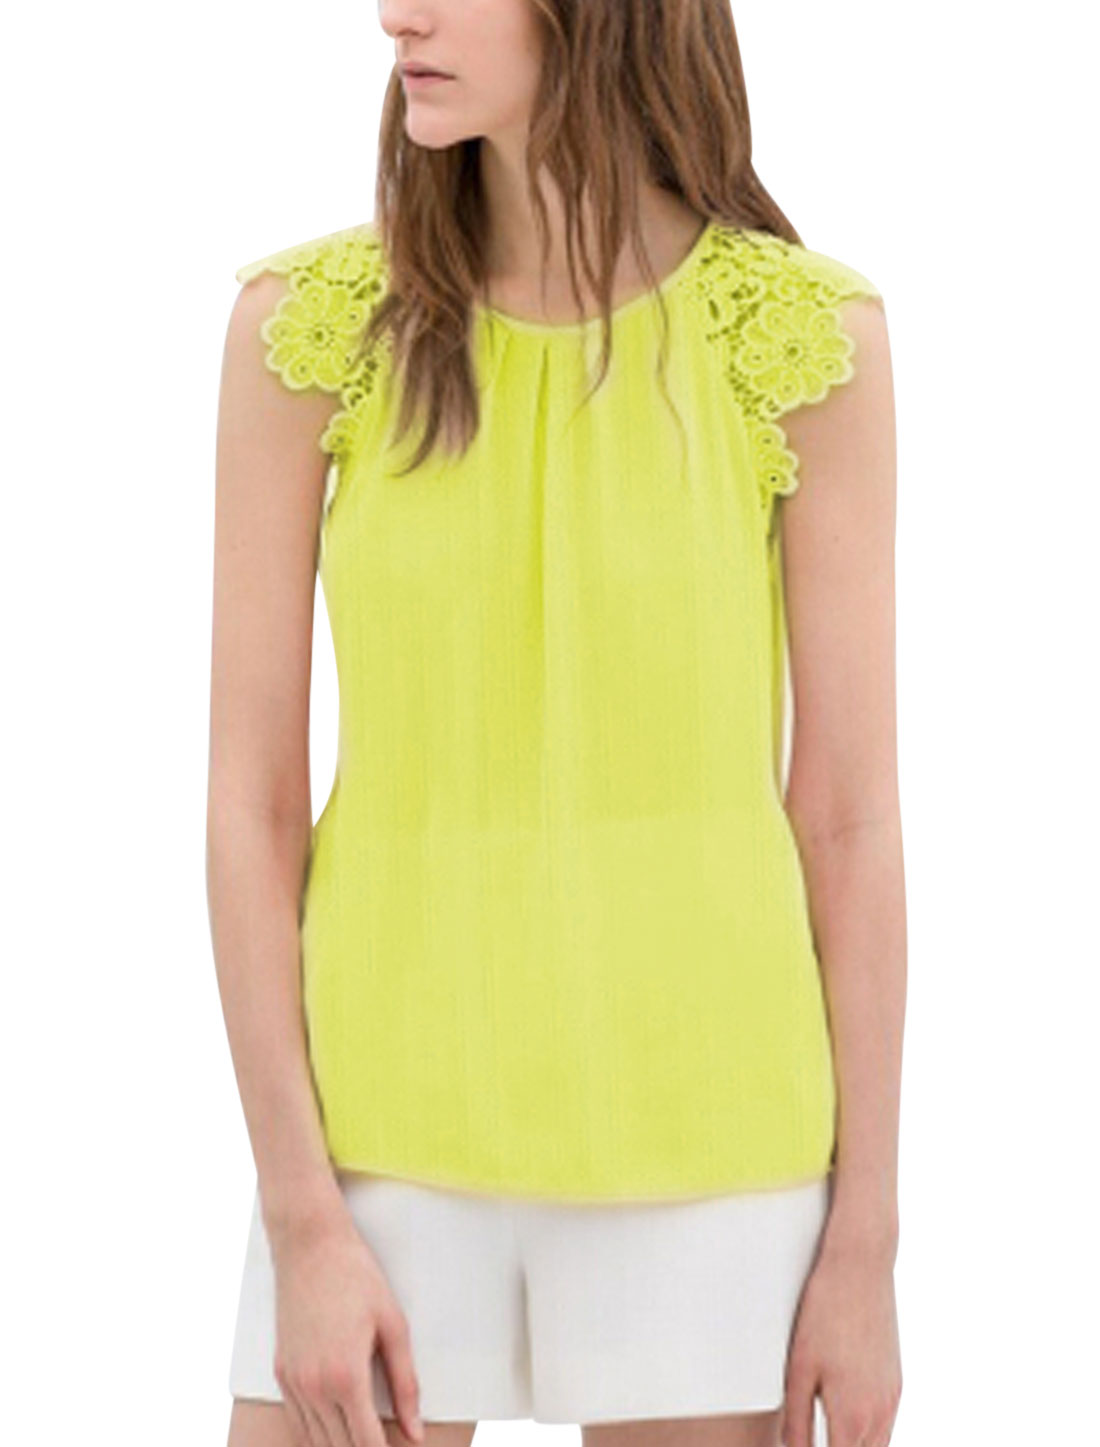 Lady Spliced Hook Flower Shouder Sleeveless Chiffon Blouse Lime L